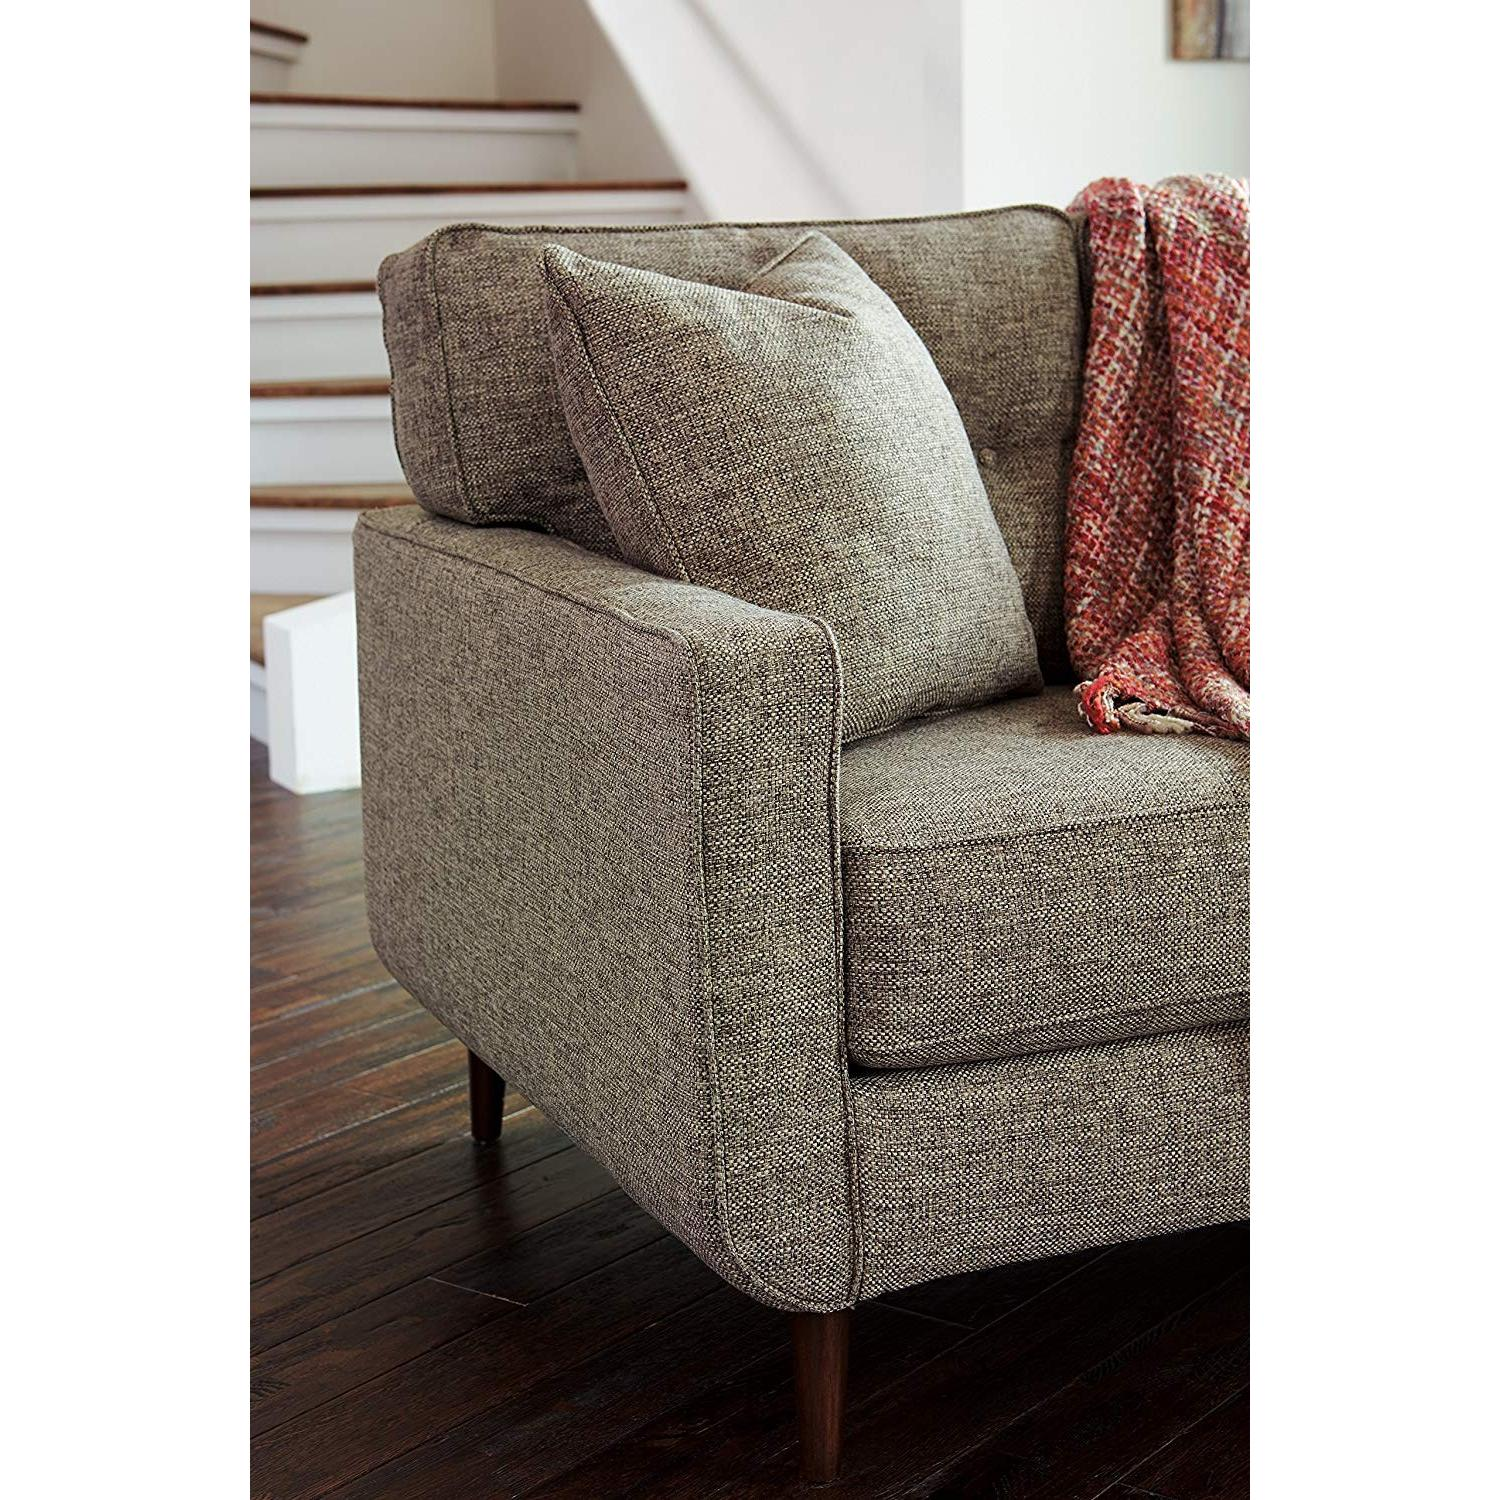 Ashley Chento Jute Sofa in Beige/Natural - image-2